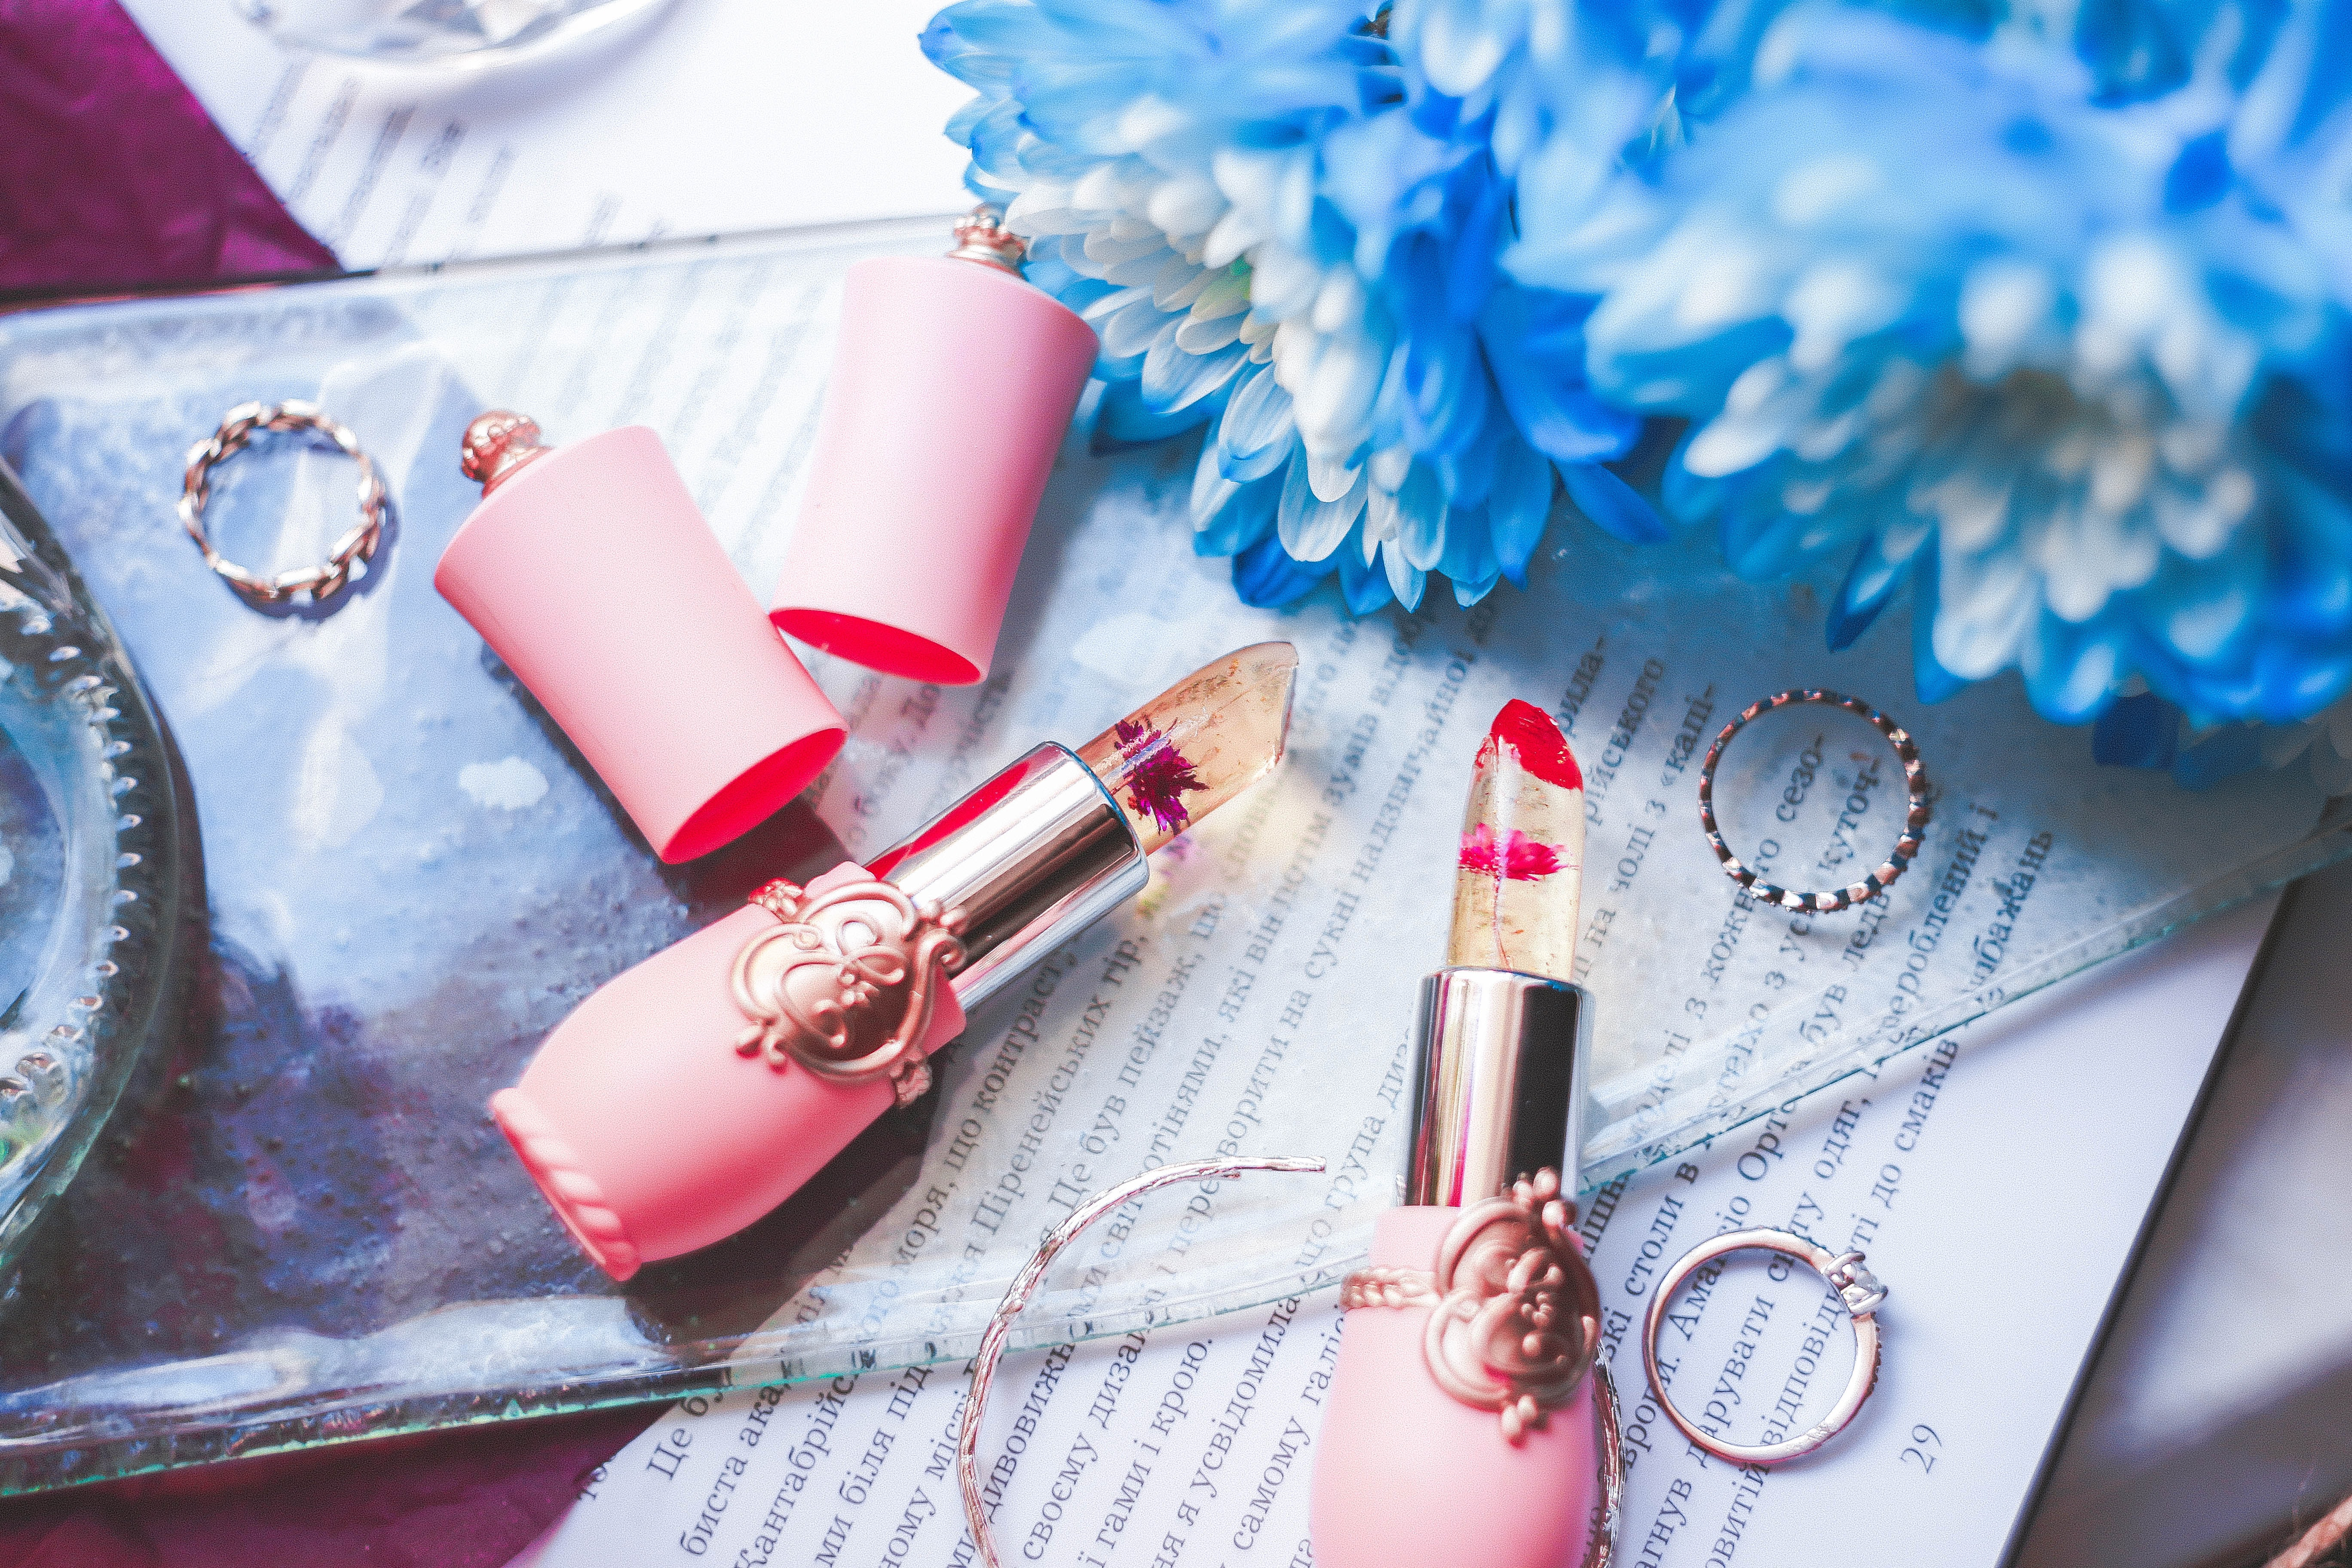 lipsticks beside blue petaled flowers